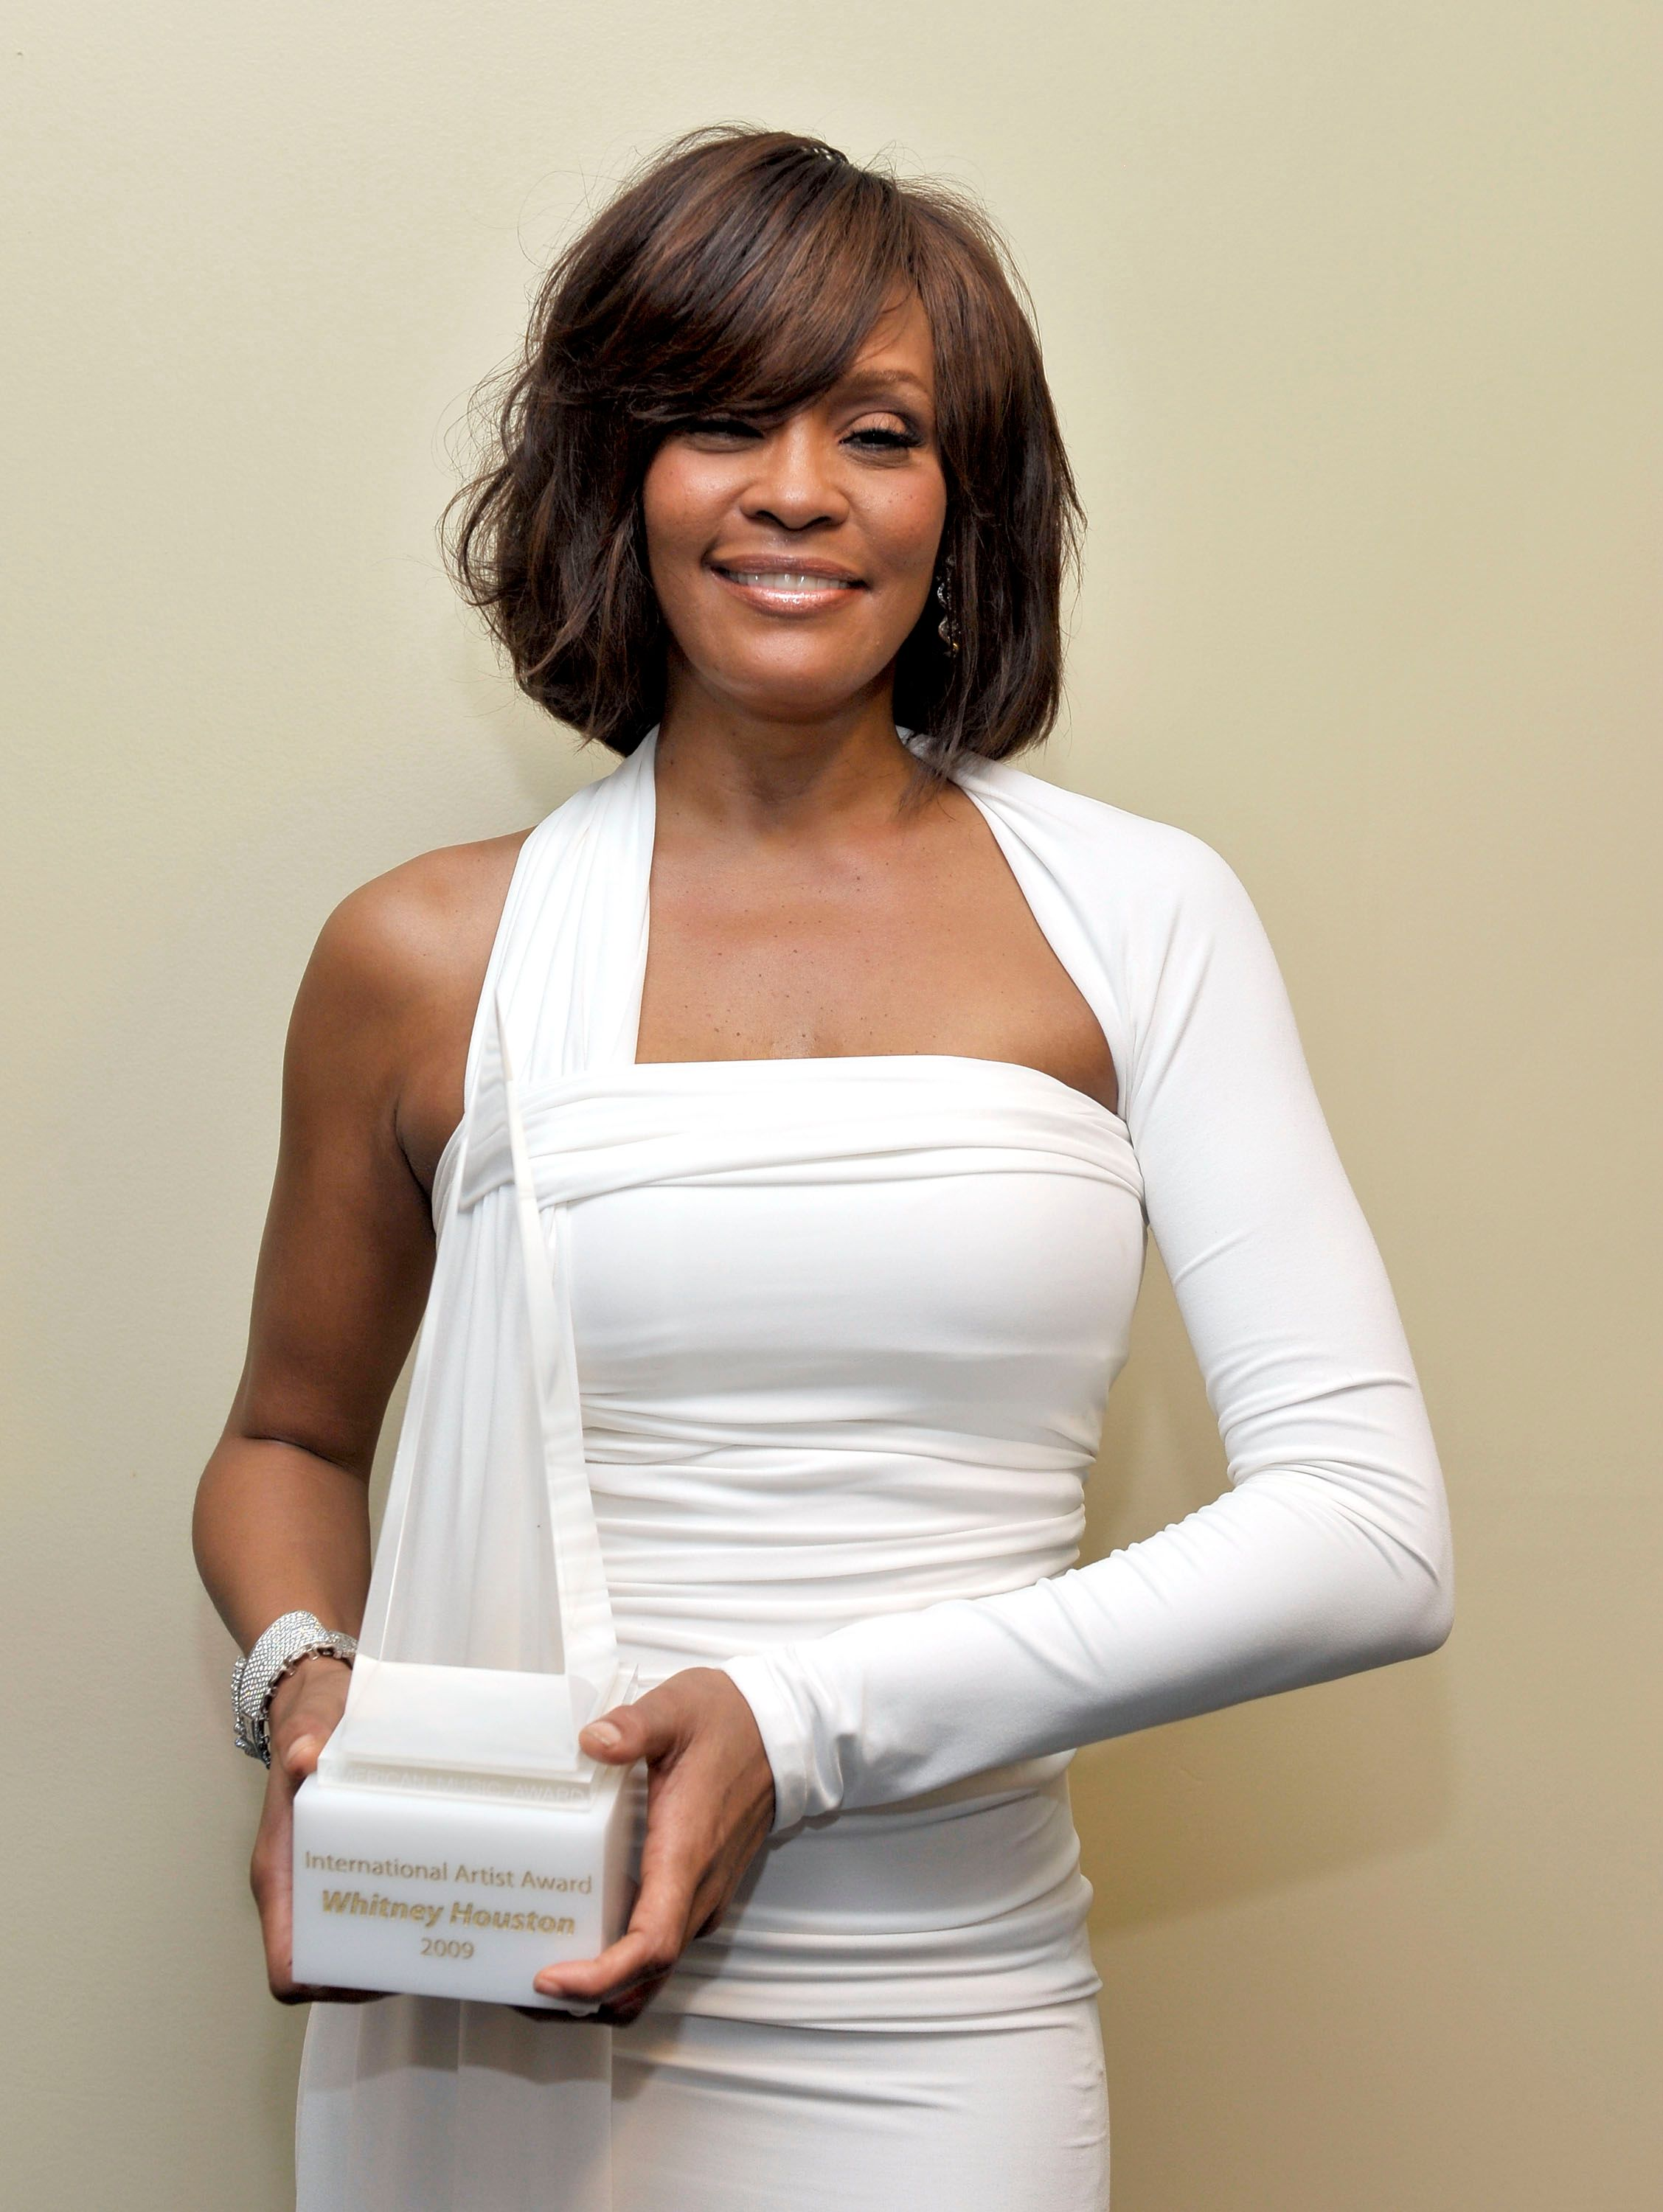 Late singer Whitney Houston posed with her Favorite Artist Award backstage at the 2009 American Music Awards on November 22, 2009 in Los Angeles, California. | Source: Getty Images